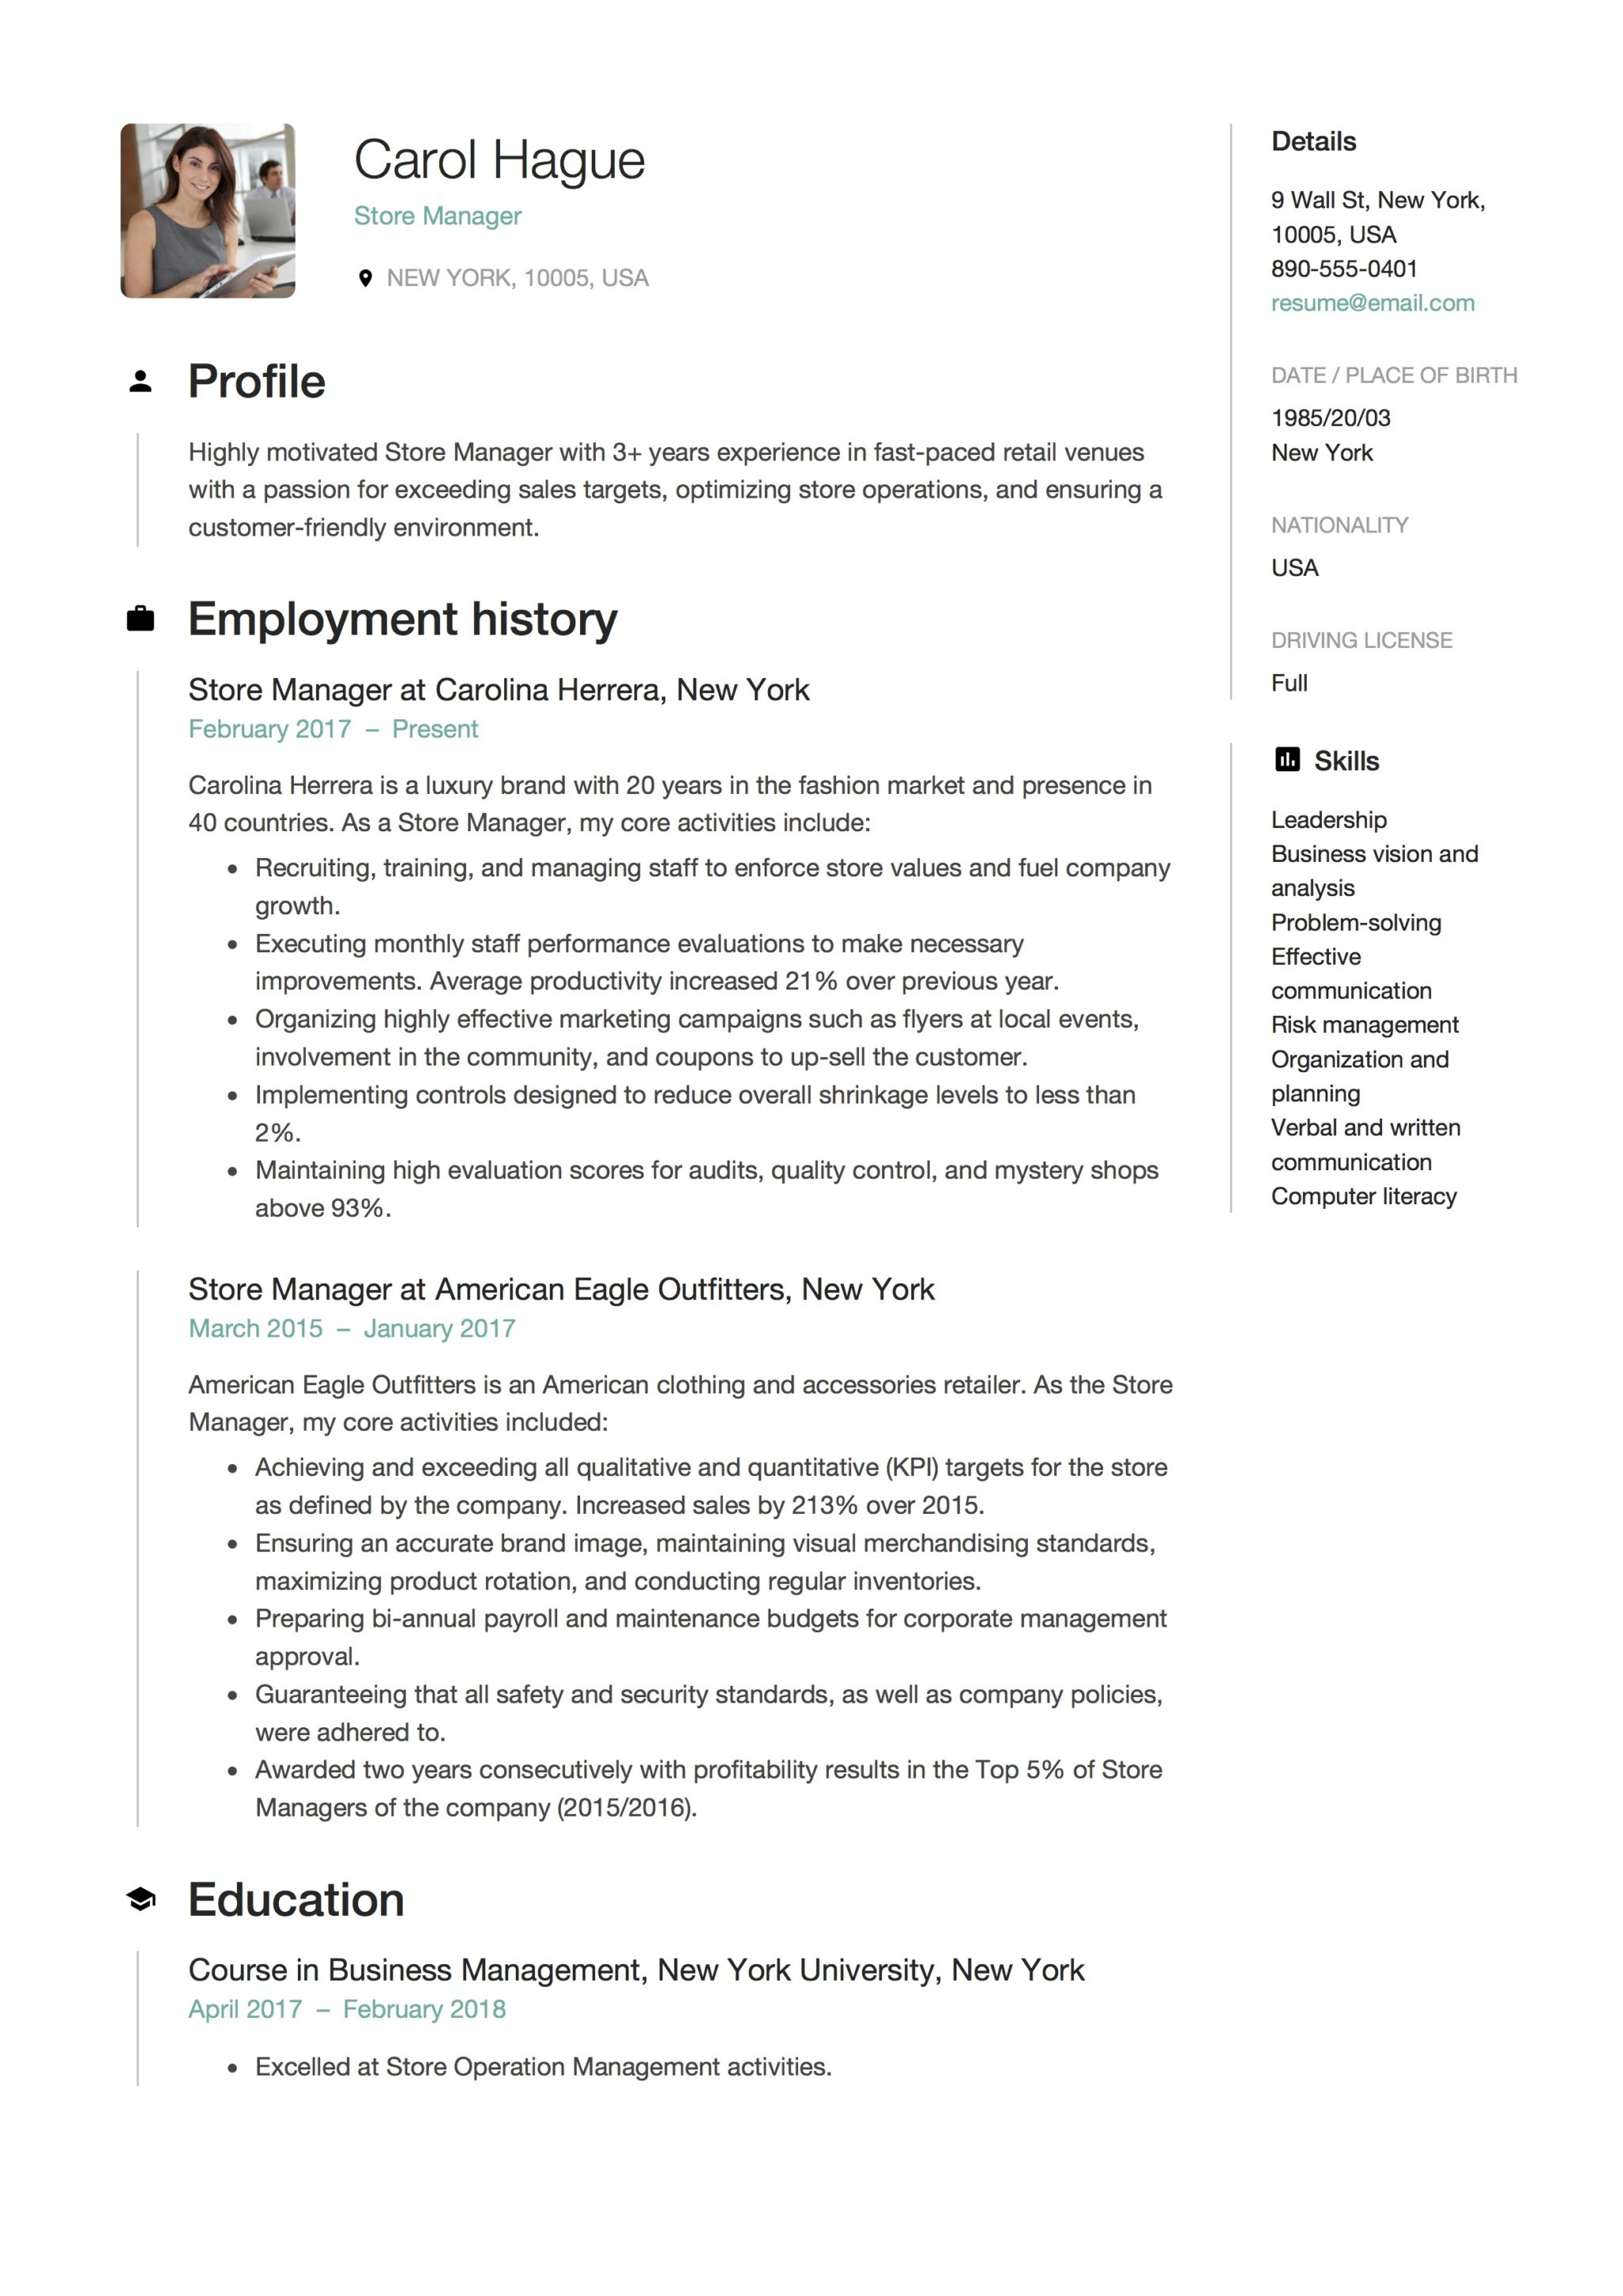 Store Manager Resume Guide Amp 12 Resume Samples Pdf 2019